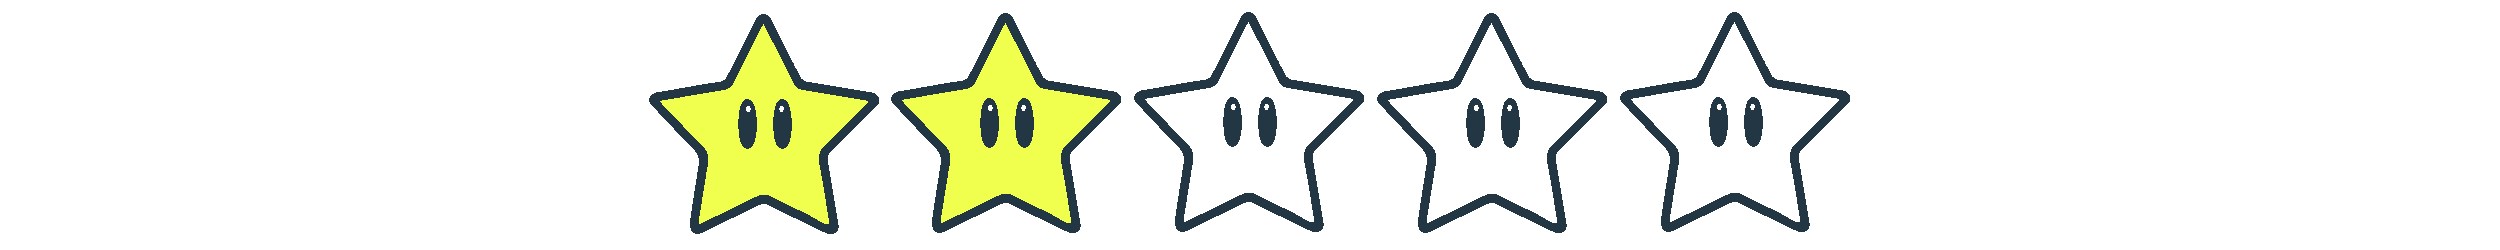 2 Star.png